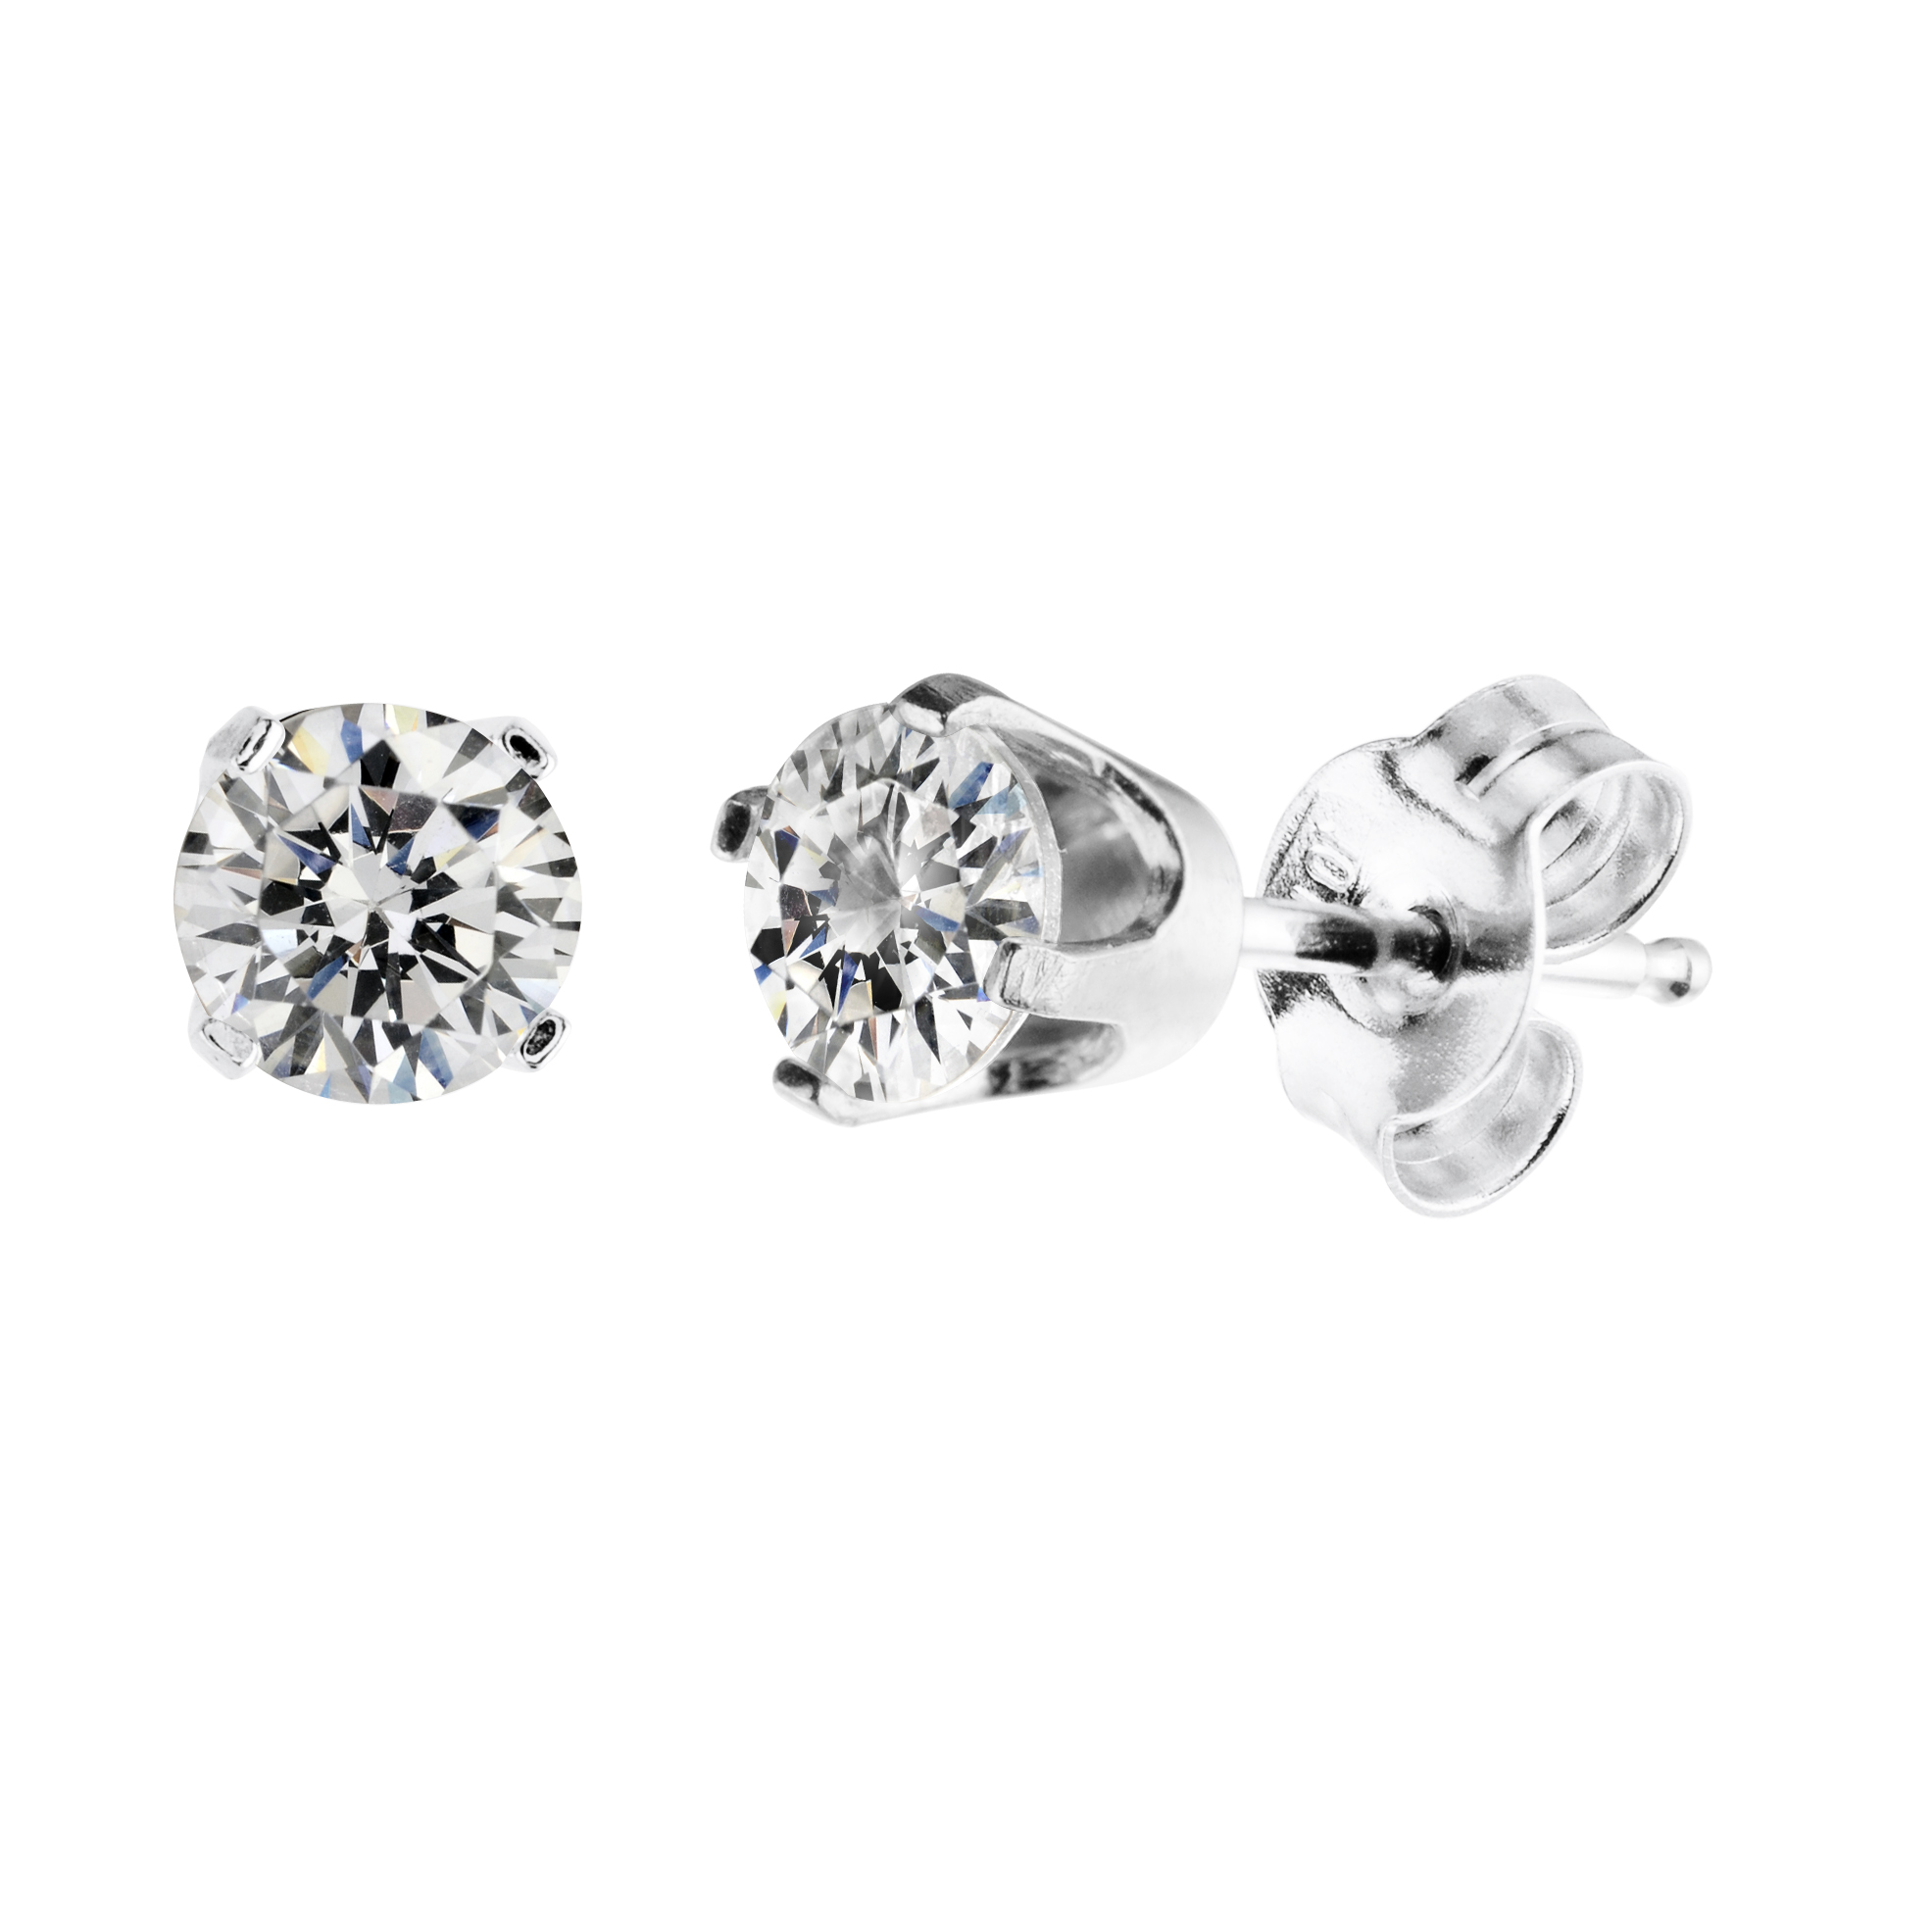 Stud Earrings with cubic zirconia of 2 X 0.025 Carats - in 14K White Gold